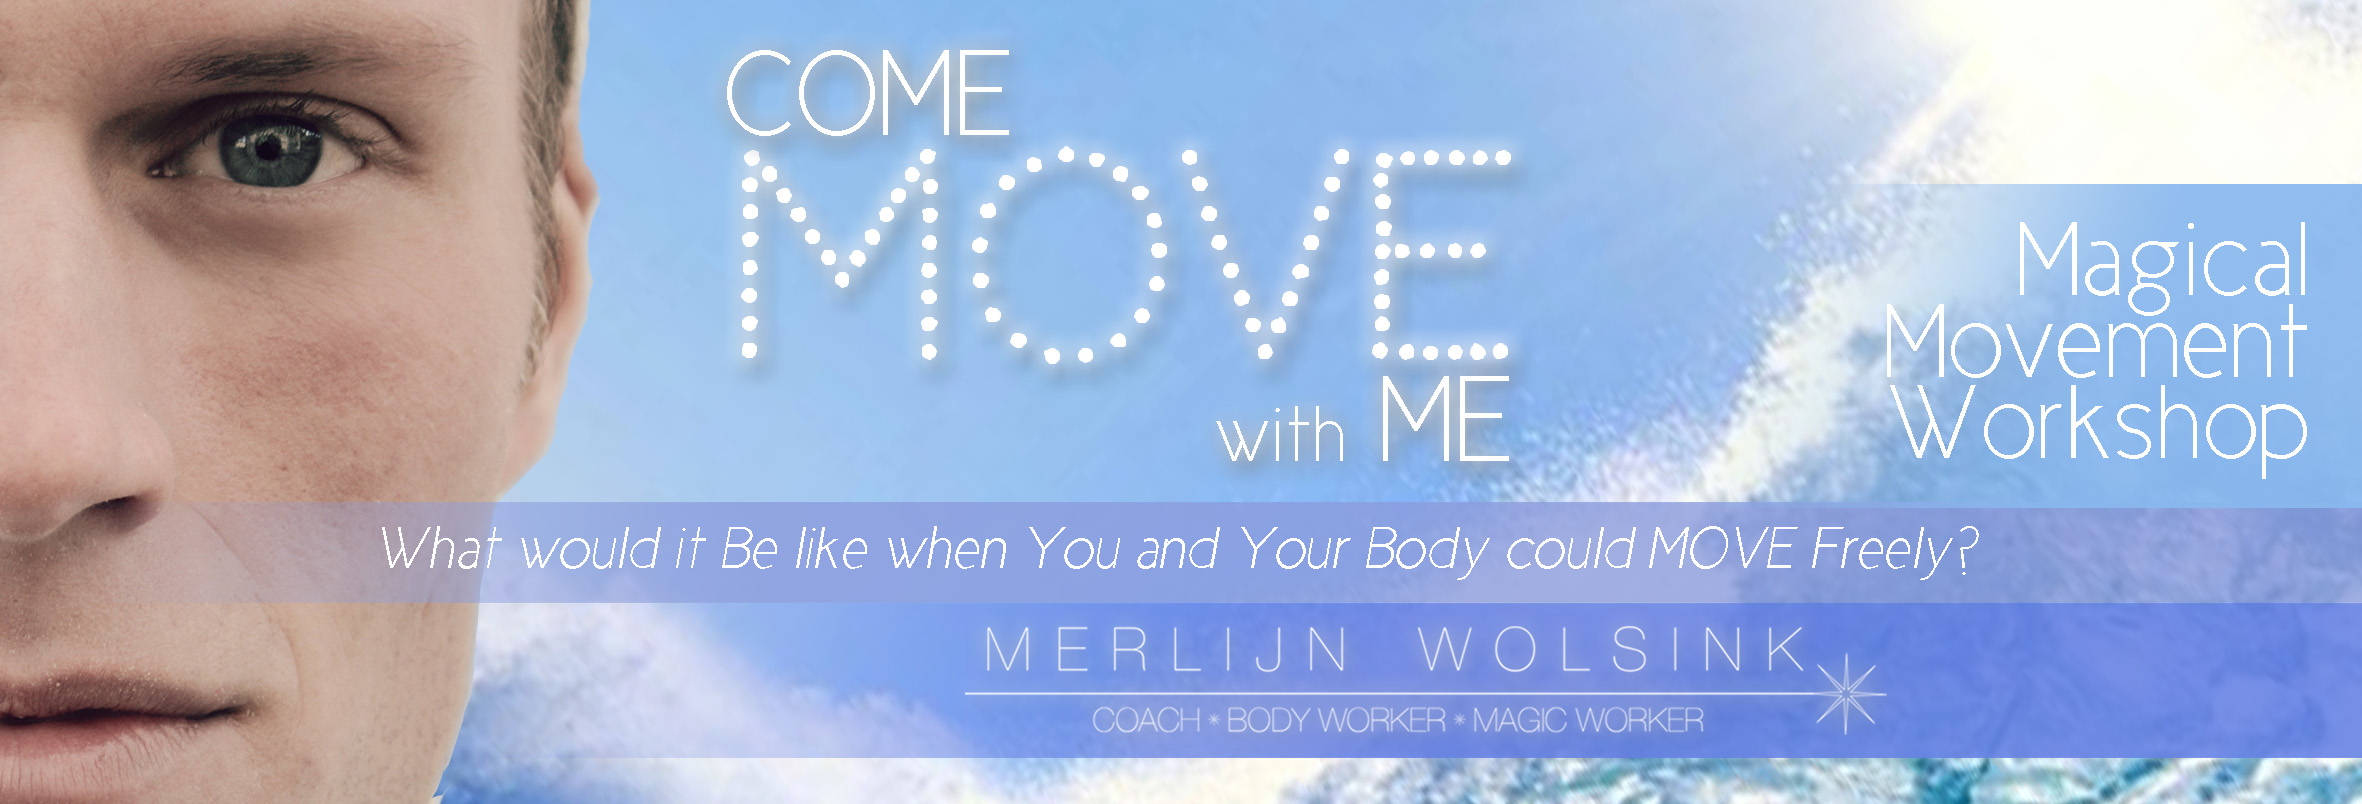 Merlijn Wolsink - Come Move With Me - Magical Movement Workshop